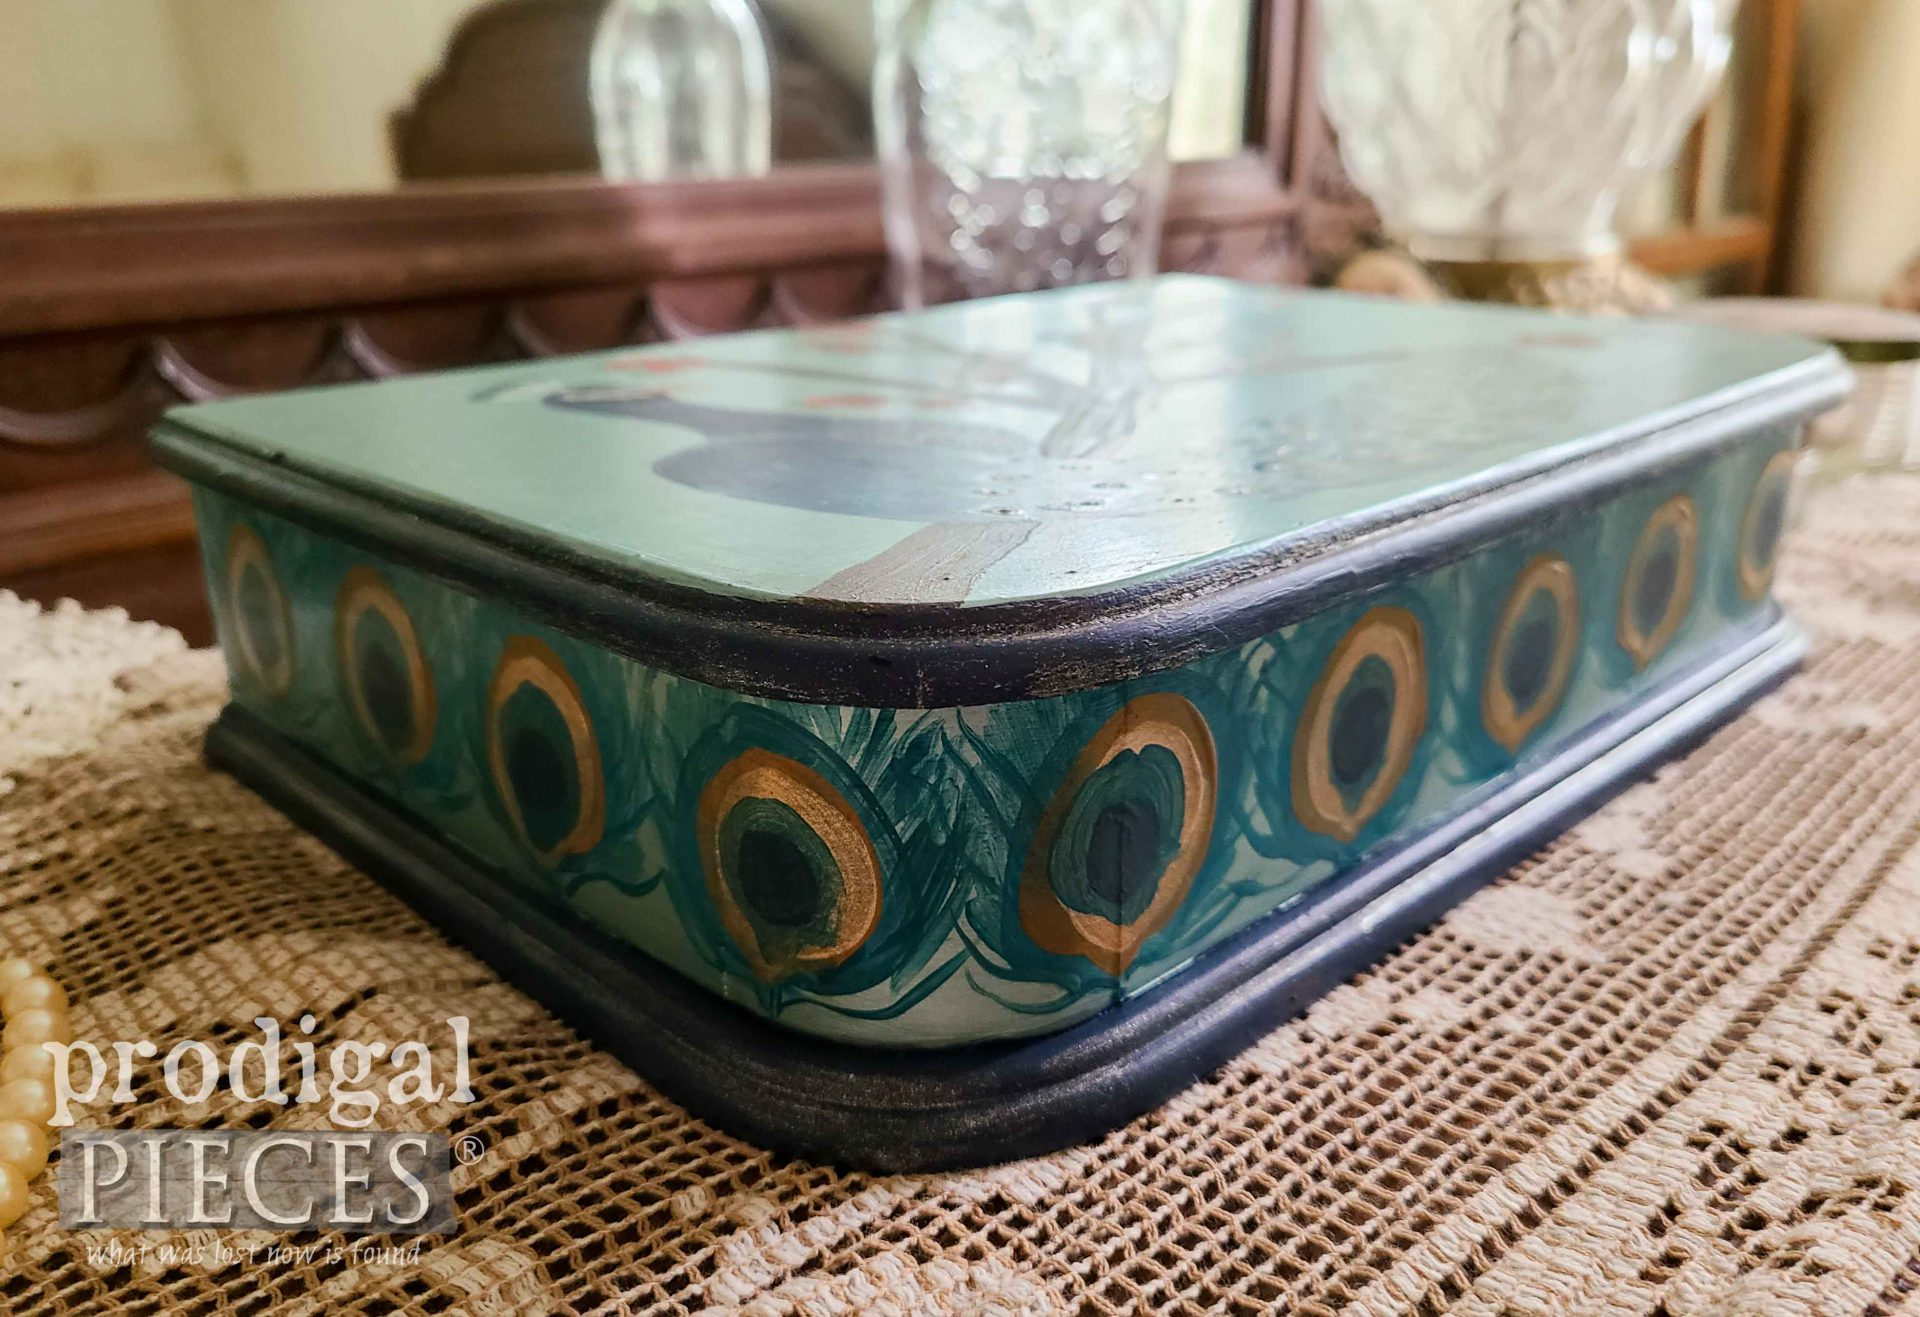 Vintage Jewelry Box with Peacock Motif by Larissa of Prodigal Pieces | prodigalpieces.com #prodigalpieces #diy #handmade #art #home #homedecor